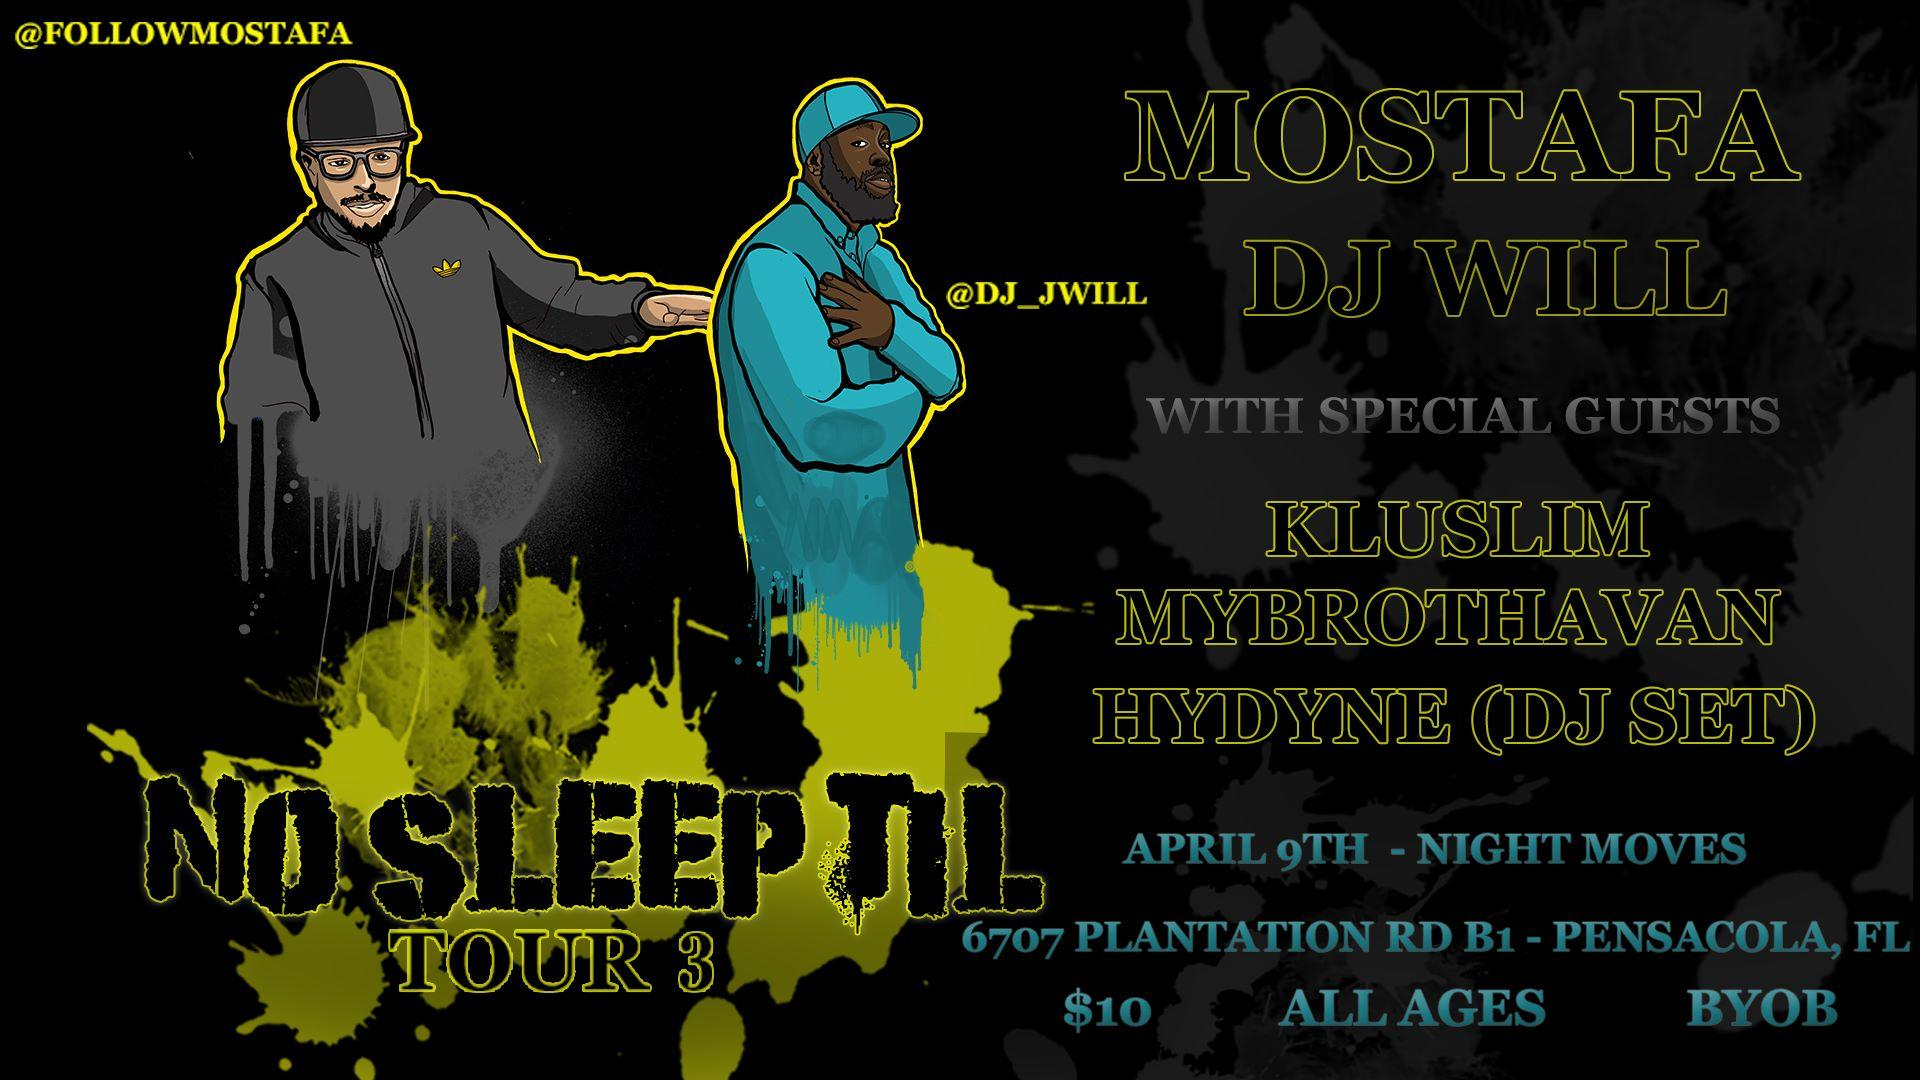 The No Sleep Til Tour 3 W/ Mostafa and DJ Will